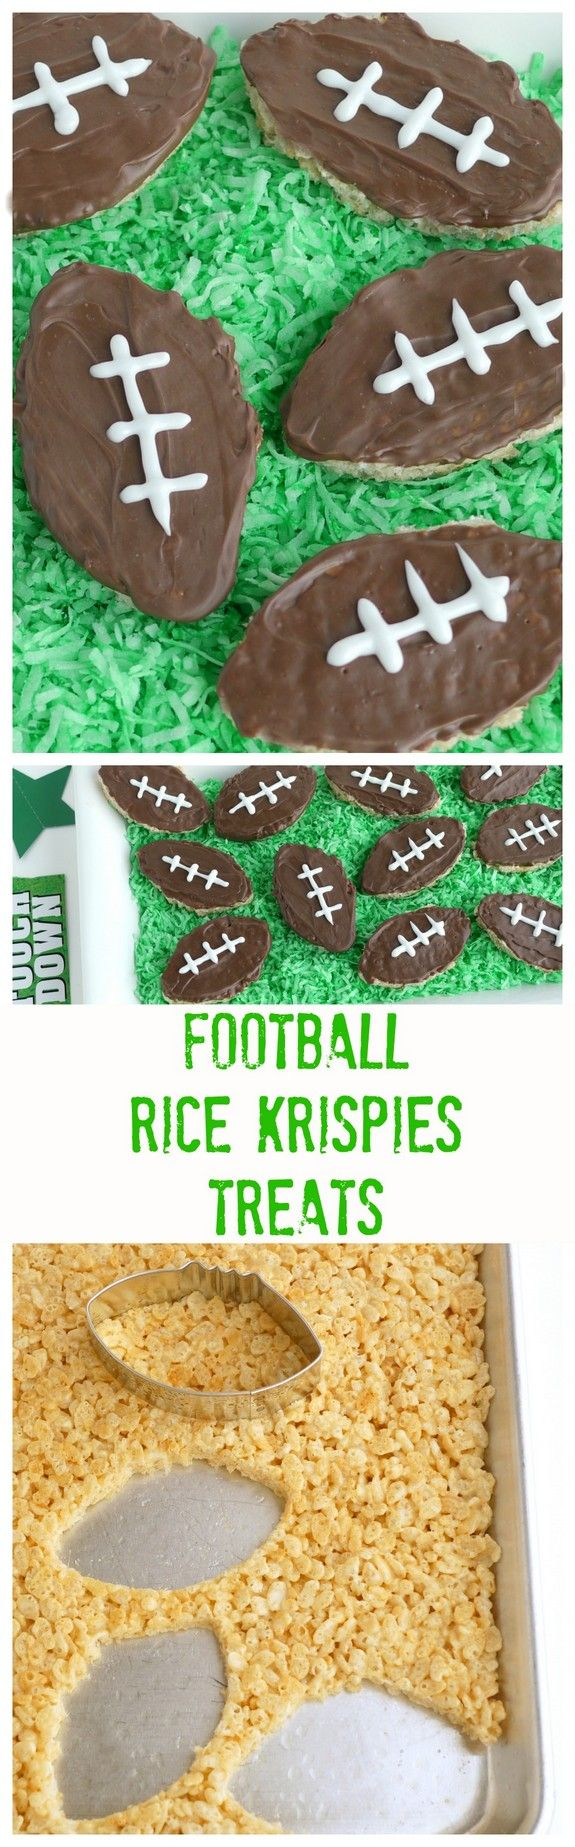 Football Inspired Rice Krispies Treats great for game day and tailgating parties! - from noblepig.com